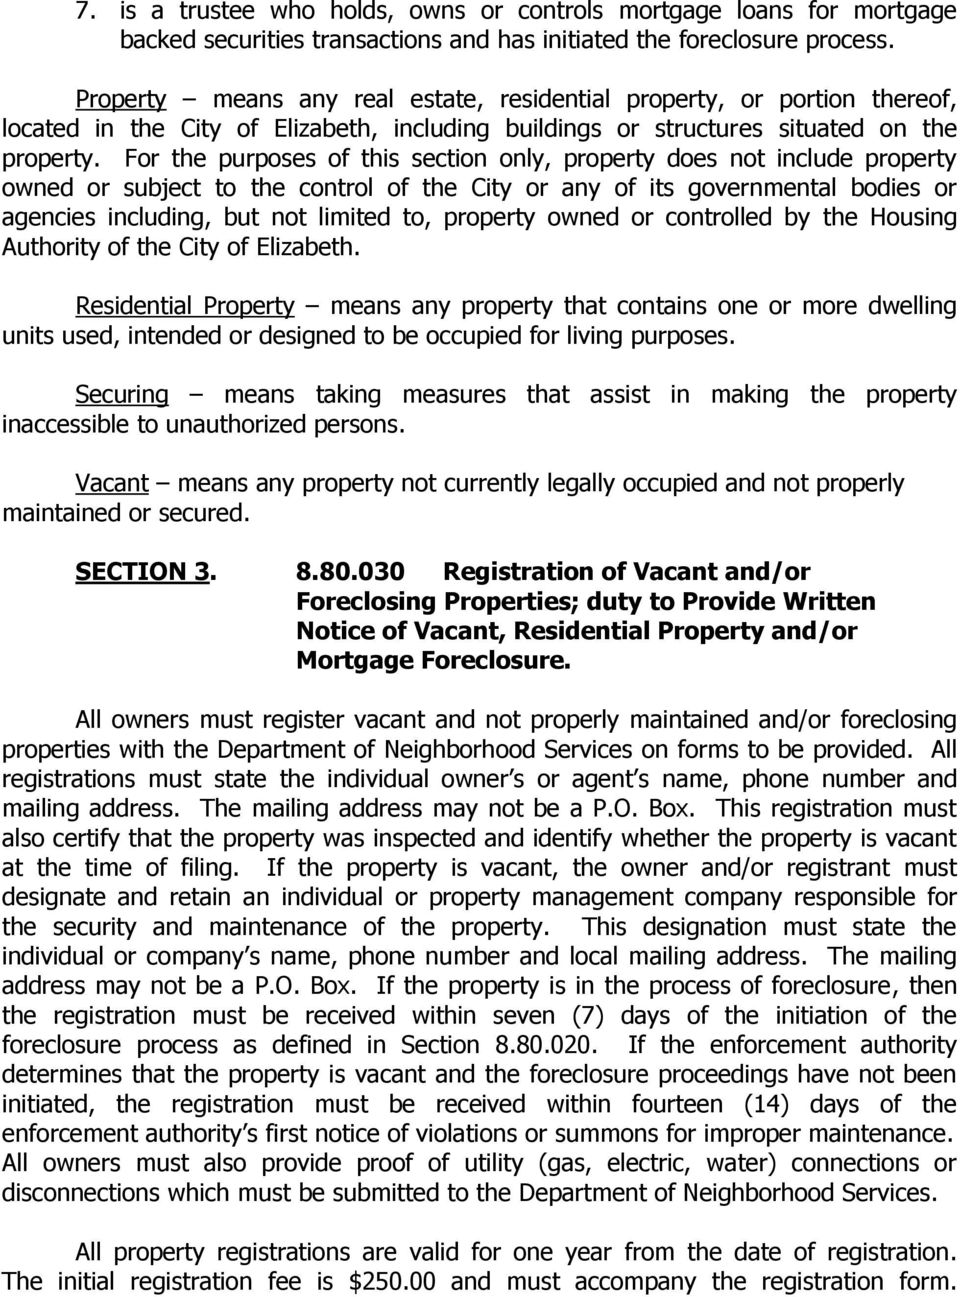 For the purposes of this section only, property does not include property owned or subject to the control of the City or any of its governmental bodies or agencies including, but not limited to,